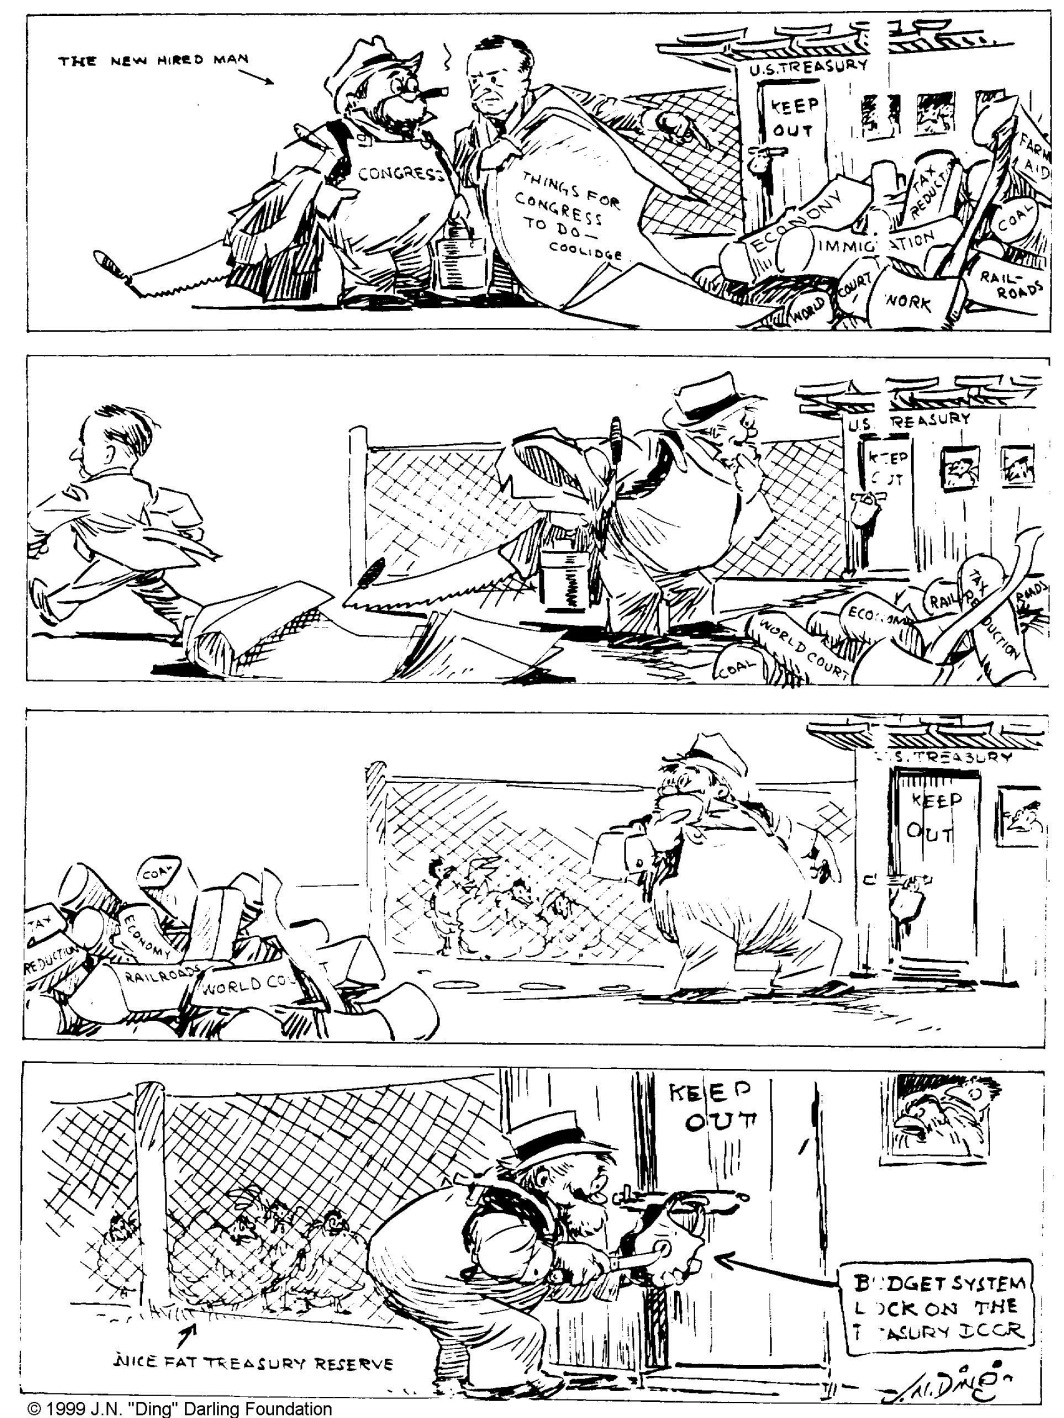 """And the first thing he tackled was the lock on the chicken coop"" by ""Ding"" Darling, Des Moines Register, December 11, 1923."